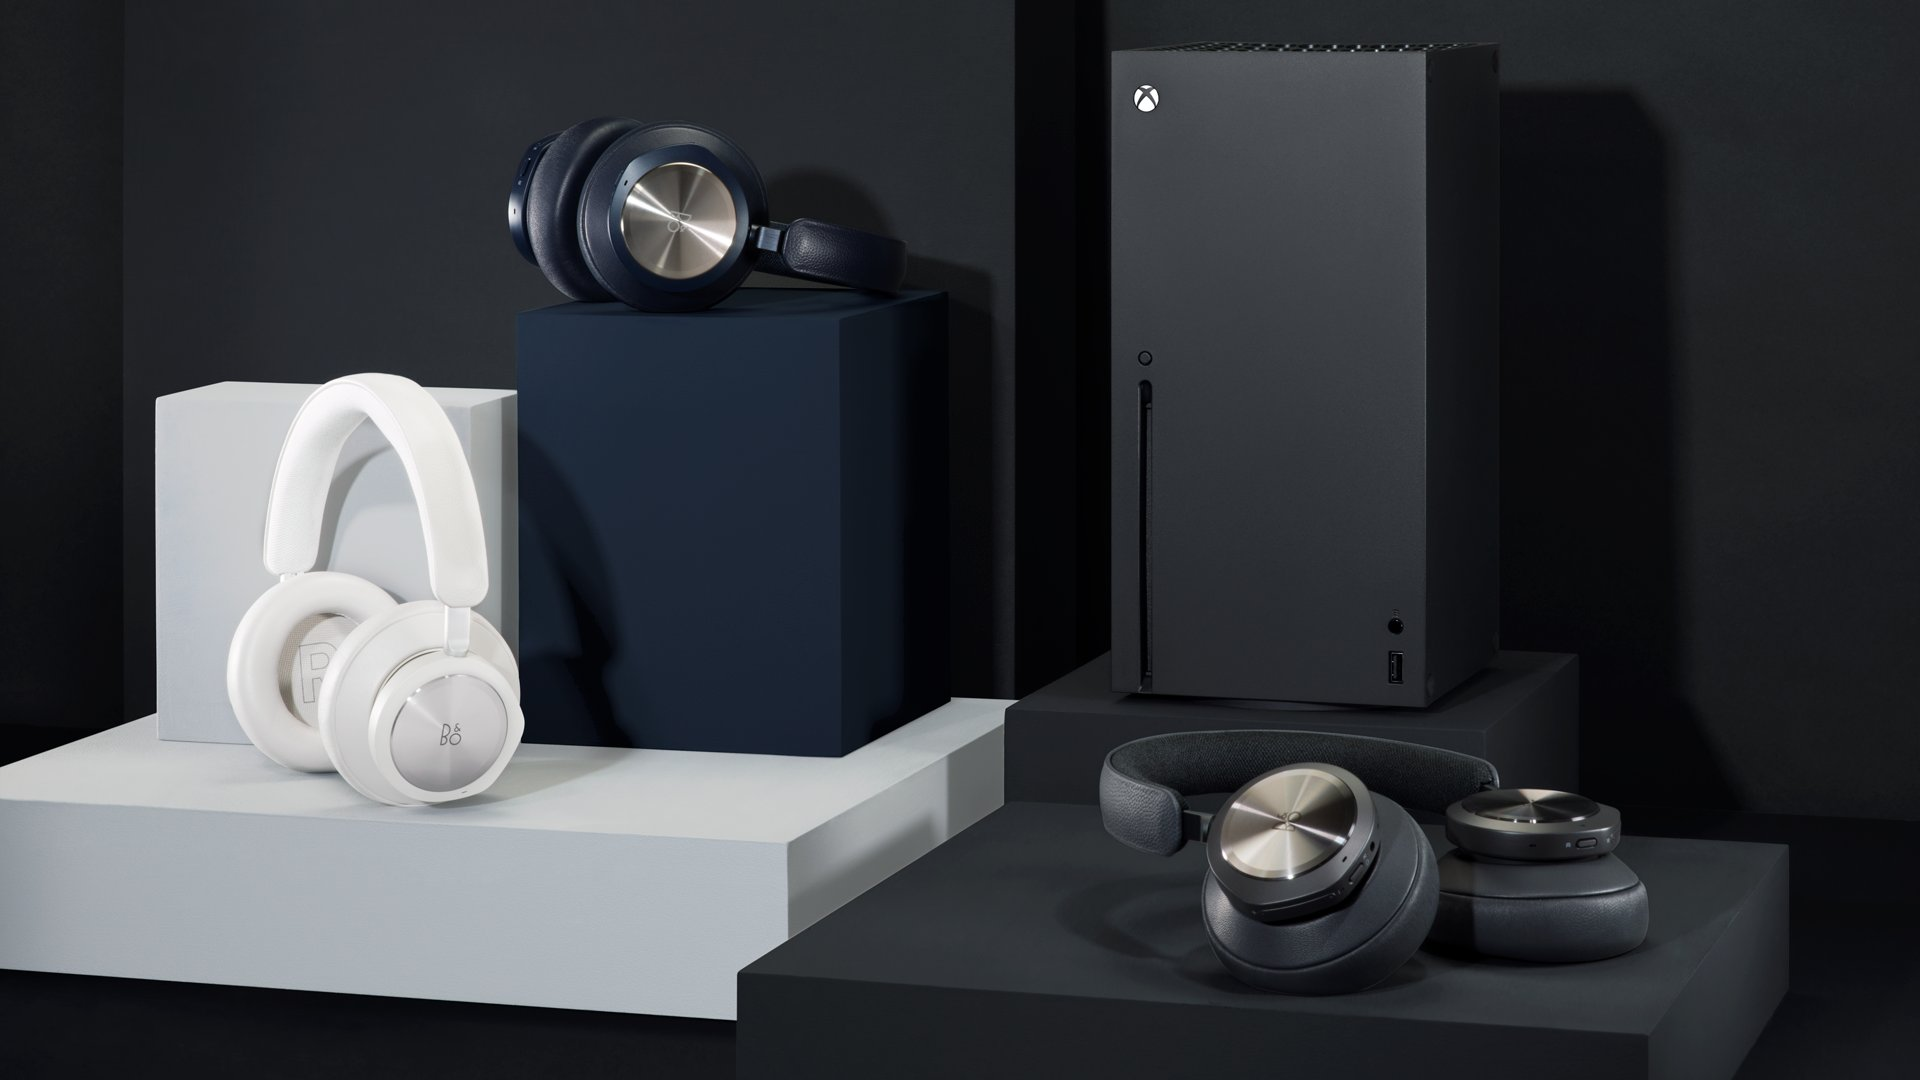 The three new Beoplay Portal headsets from B&O are arranged on like colors from left to right: Grey Mist, Navy Brass, and Anthracite. An Xbox Series X stands in the background.